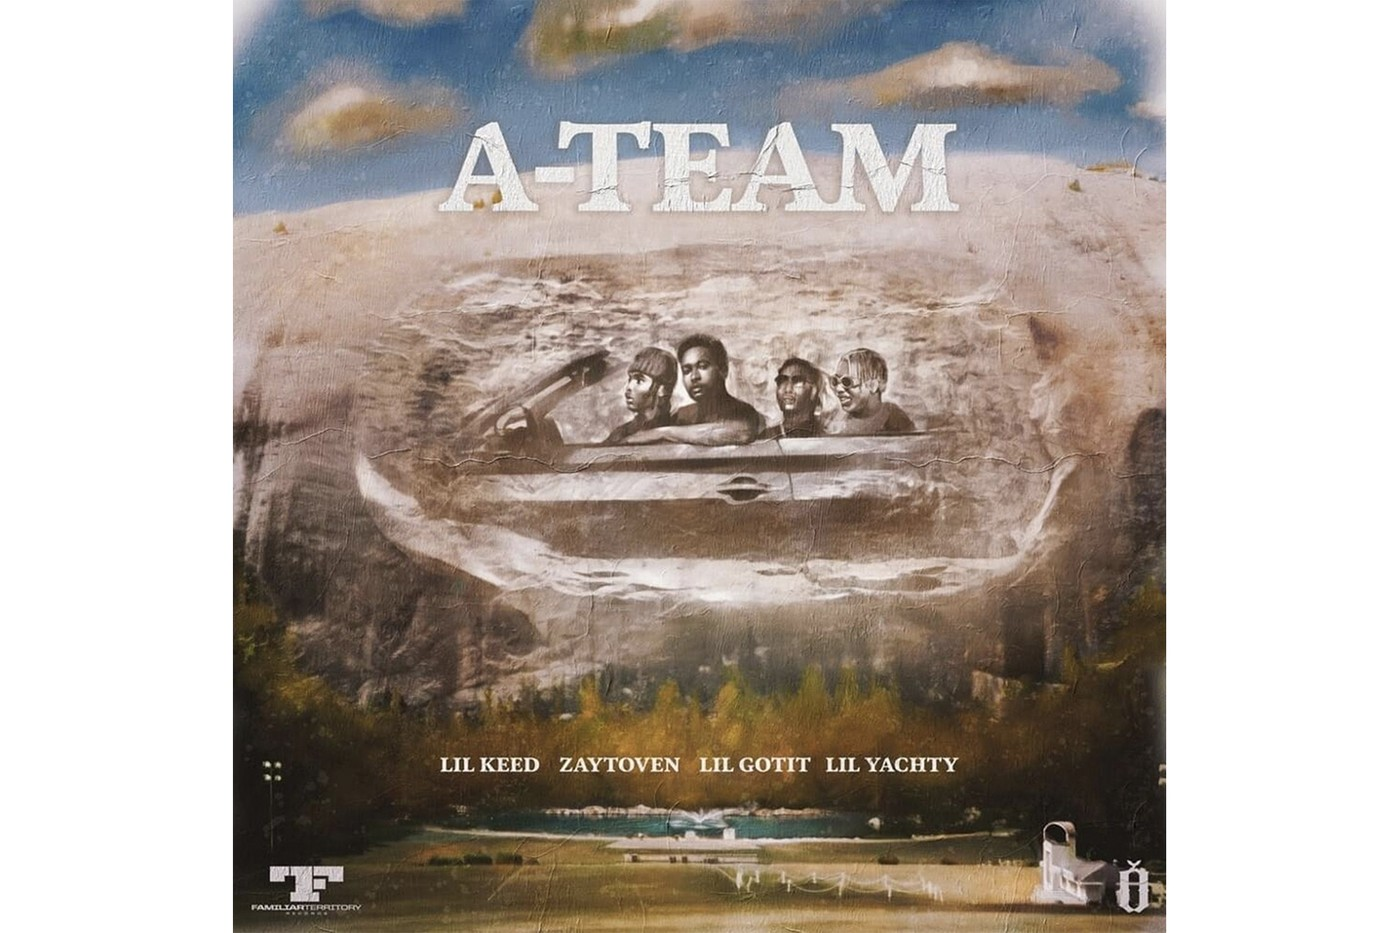 Zaytoven, Lil Yachty, Lil Keed - A-Team (Album)